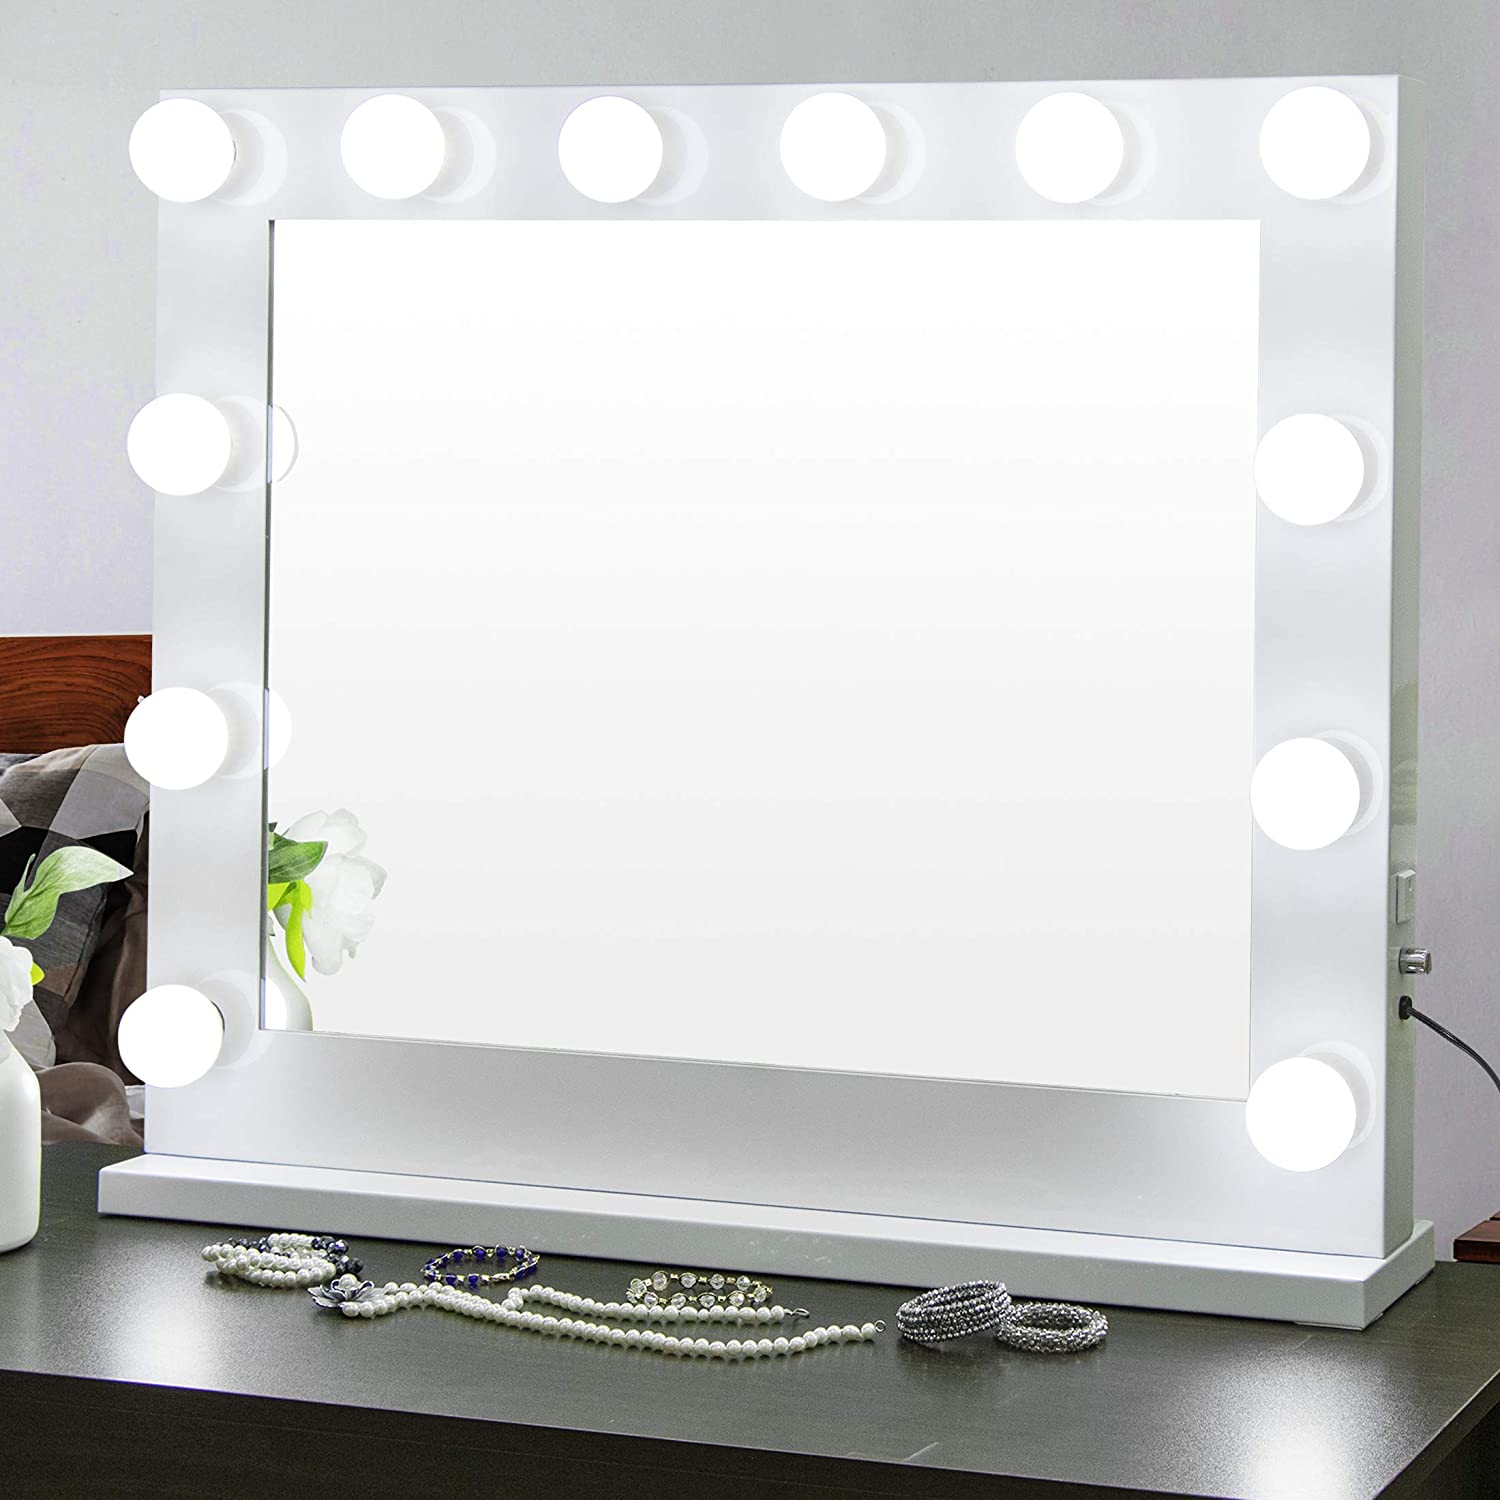 ZENY Long-awaited Hollywood Vanity Makeup Dressing Table Light Mirror 55% OFF